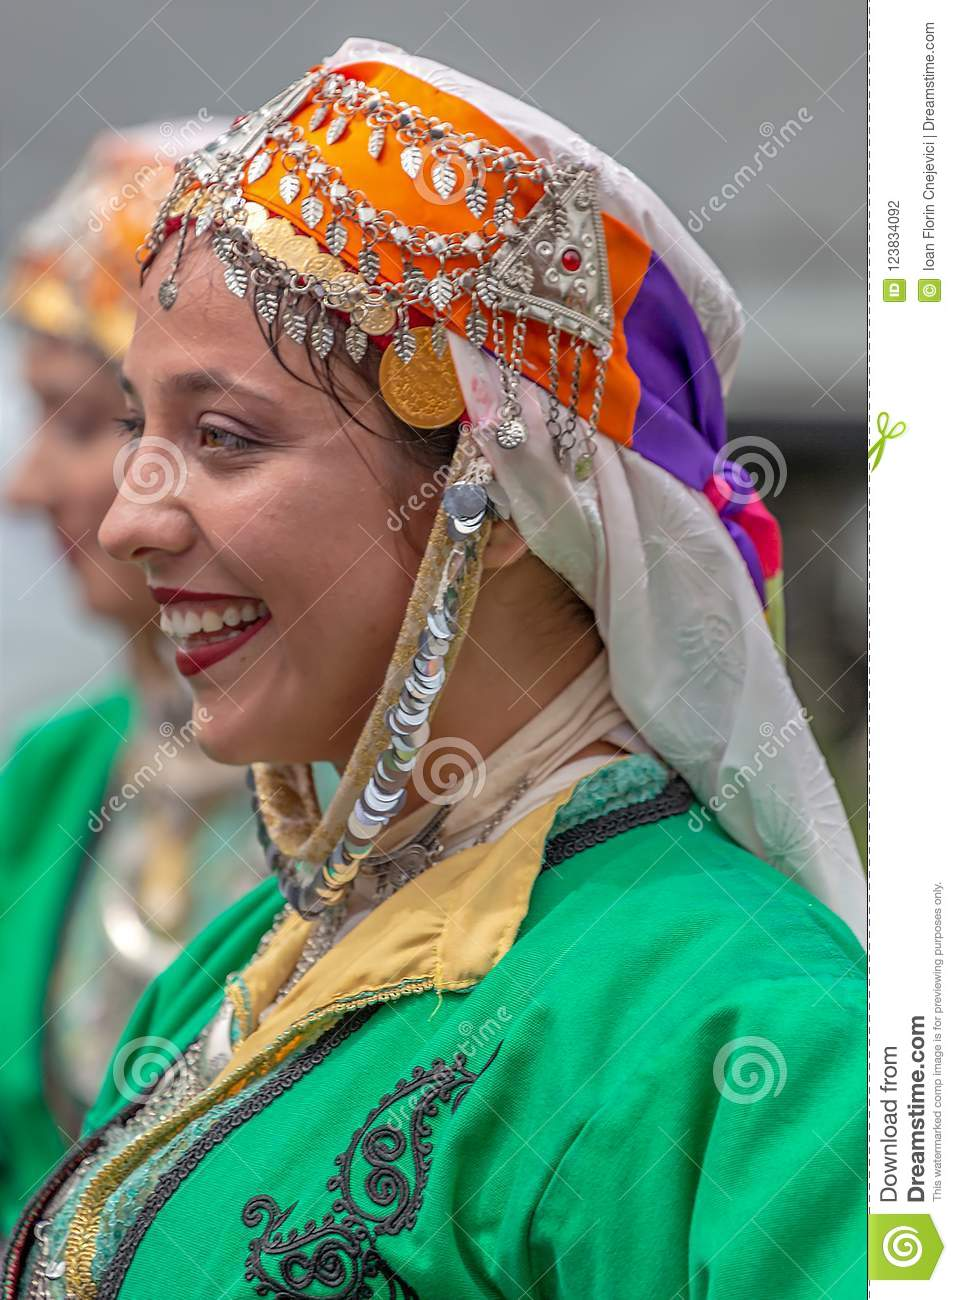 Download comp  sc 1 st  Dreamstime.com & Young Woman From Turkey In Traditional Costume Editorial Photography ...